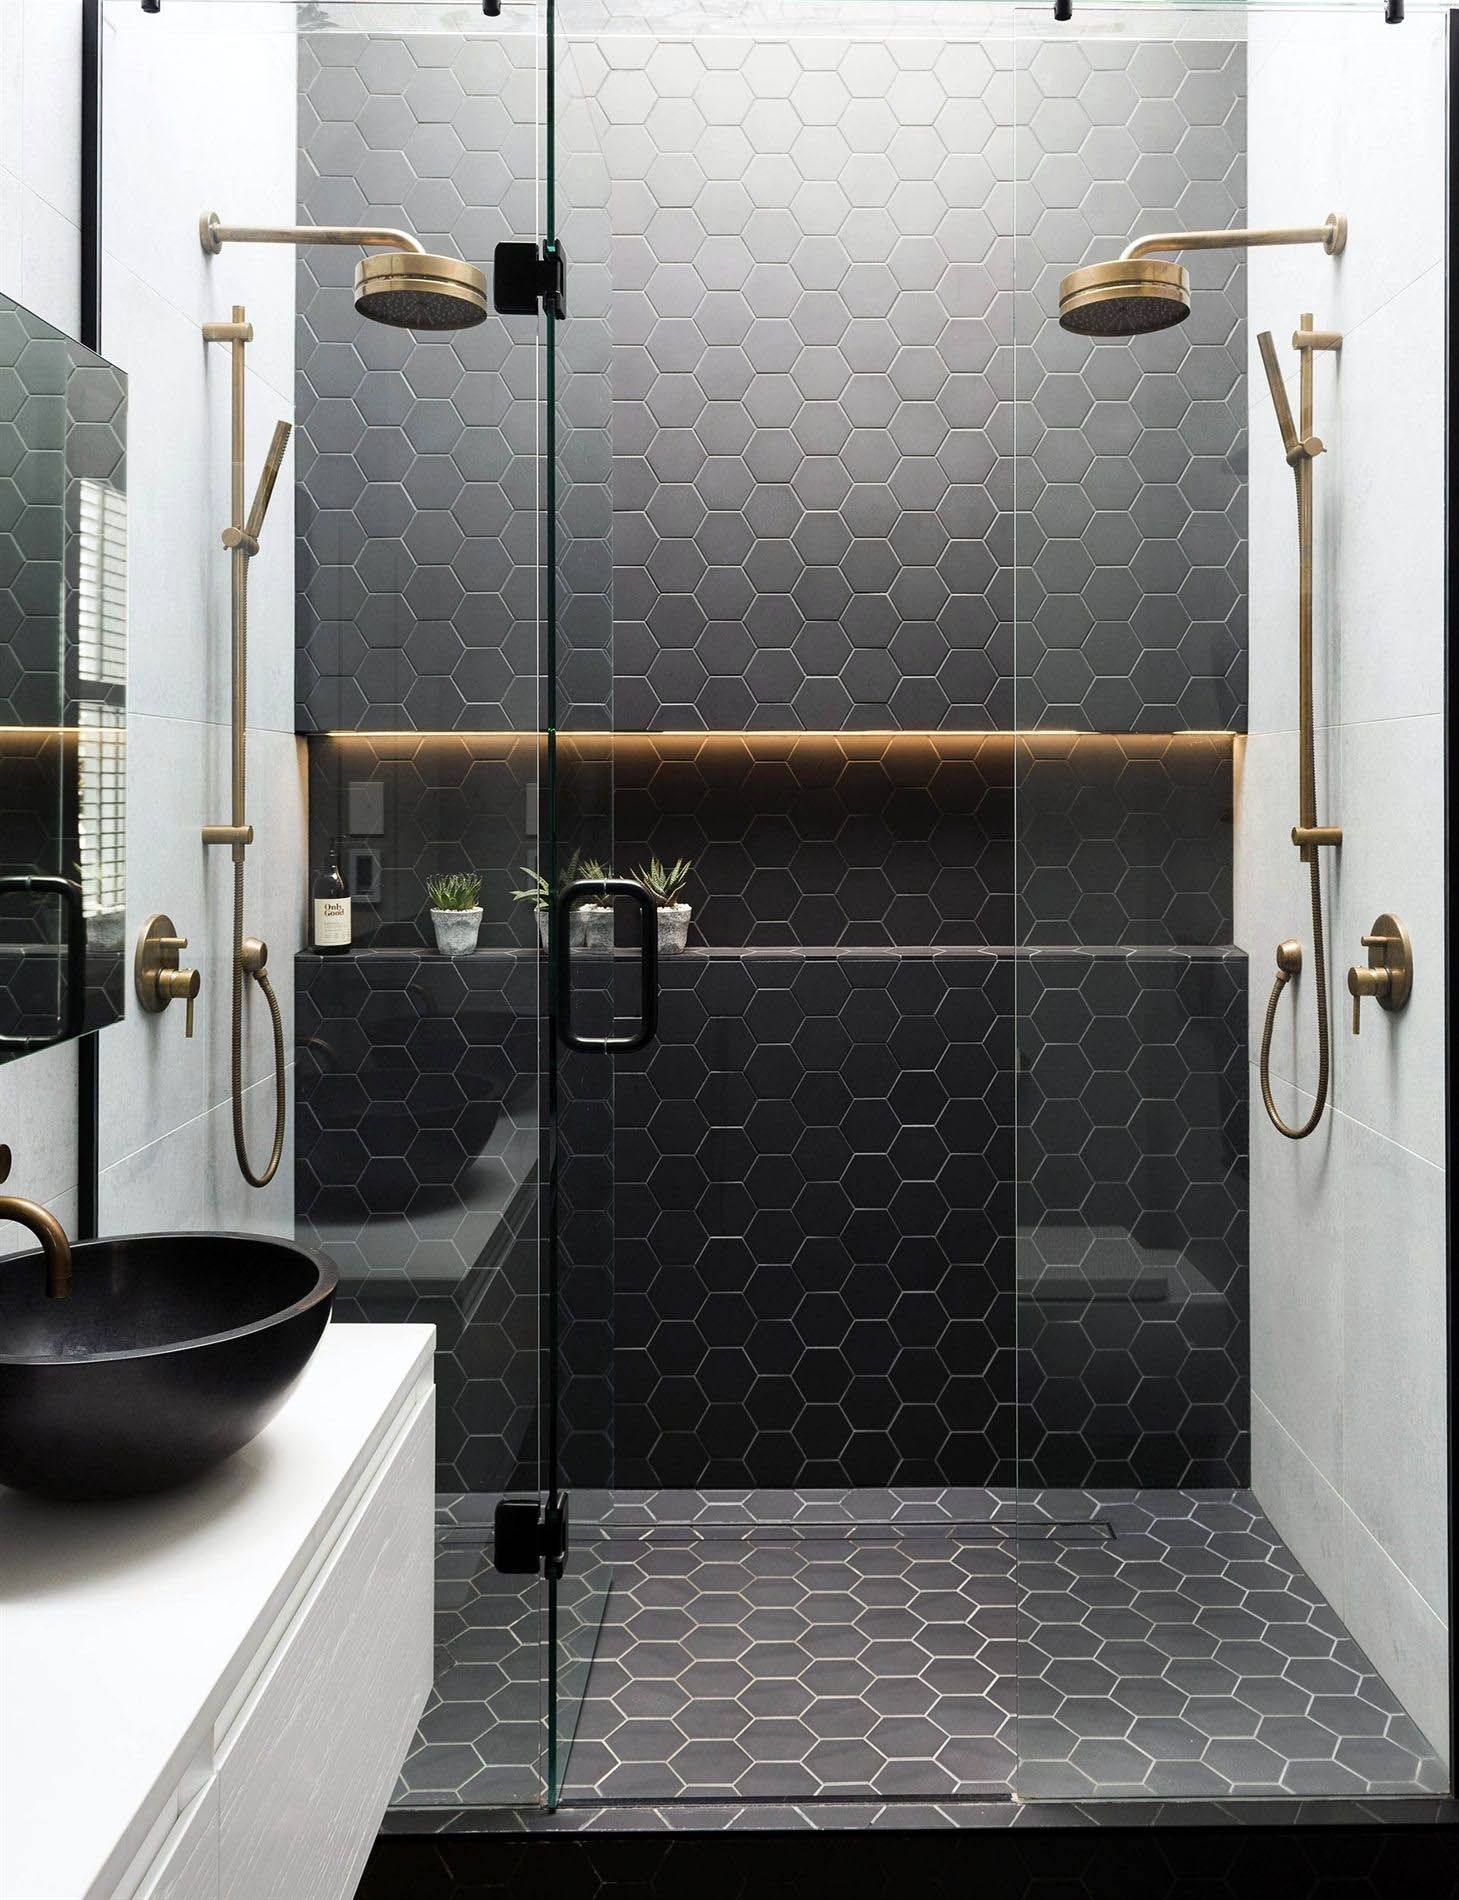 Photo of Shower Room Shower Remodel Suggestions